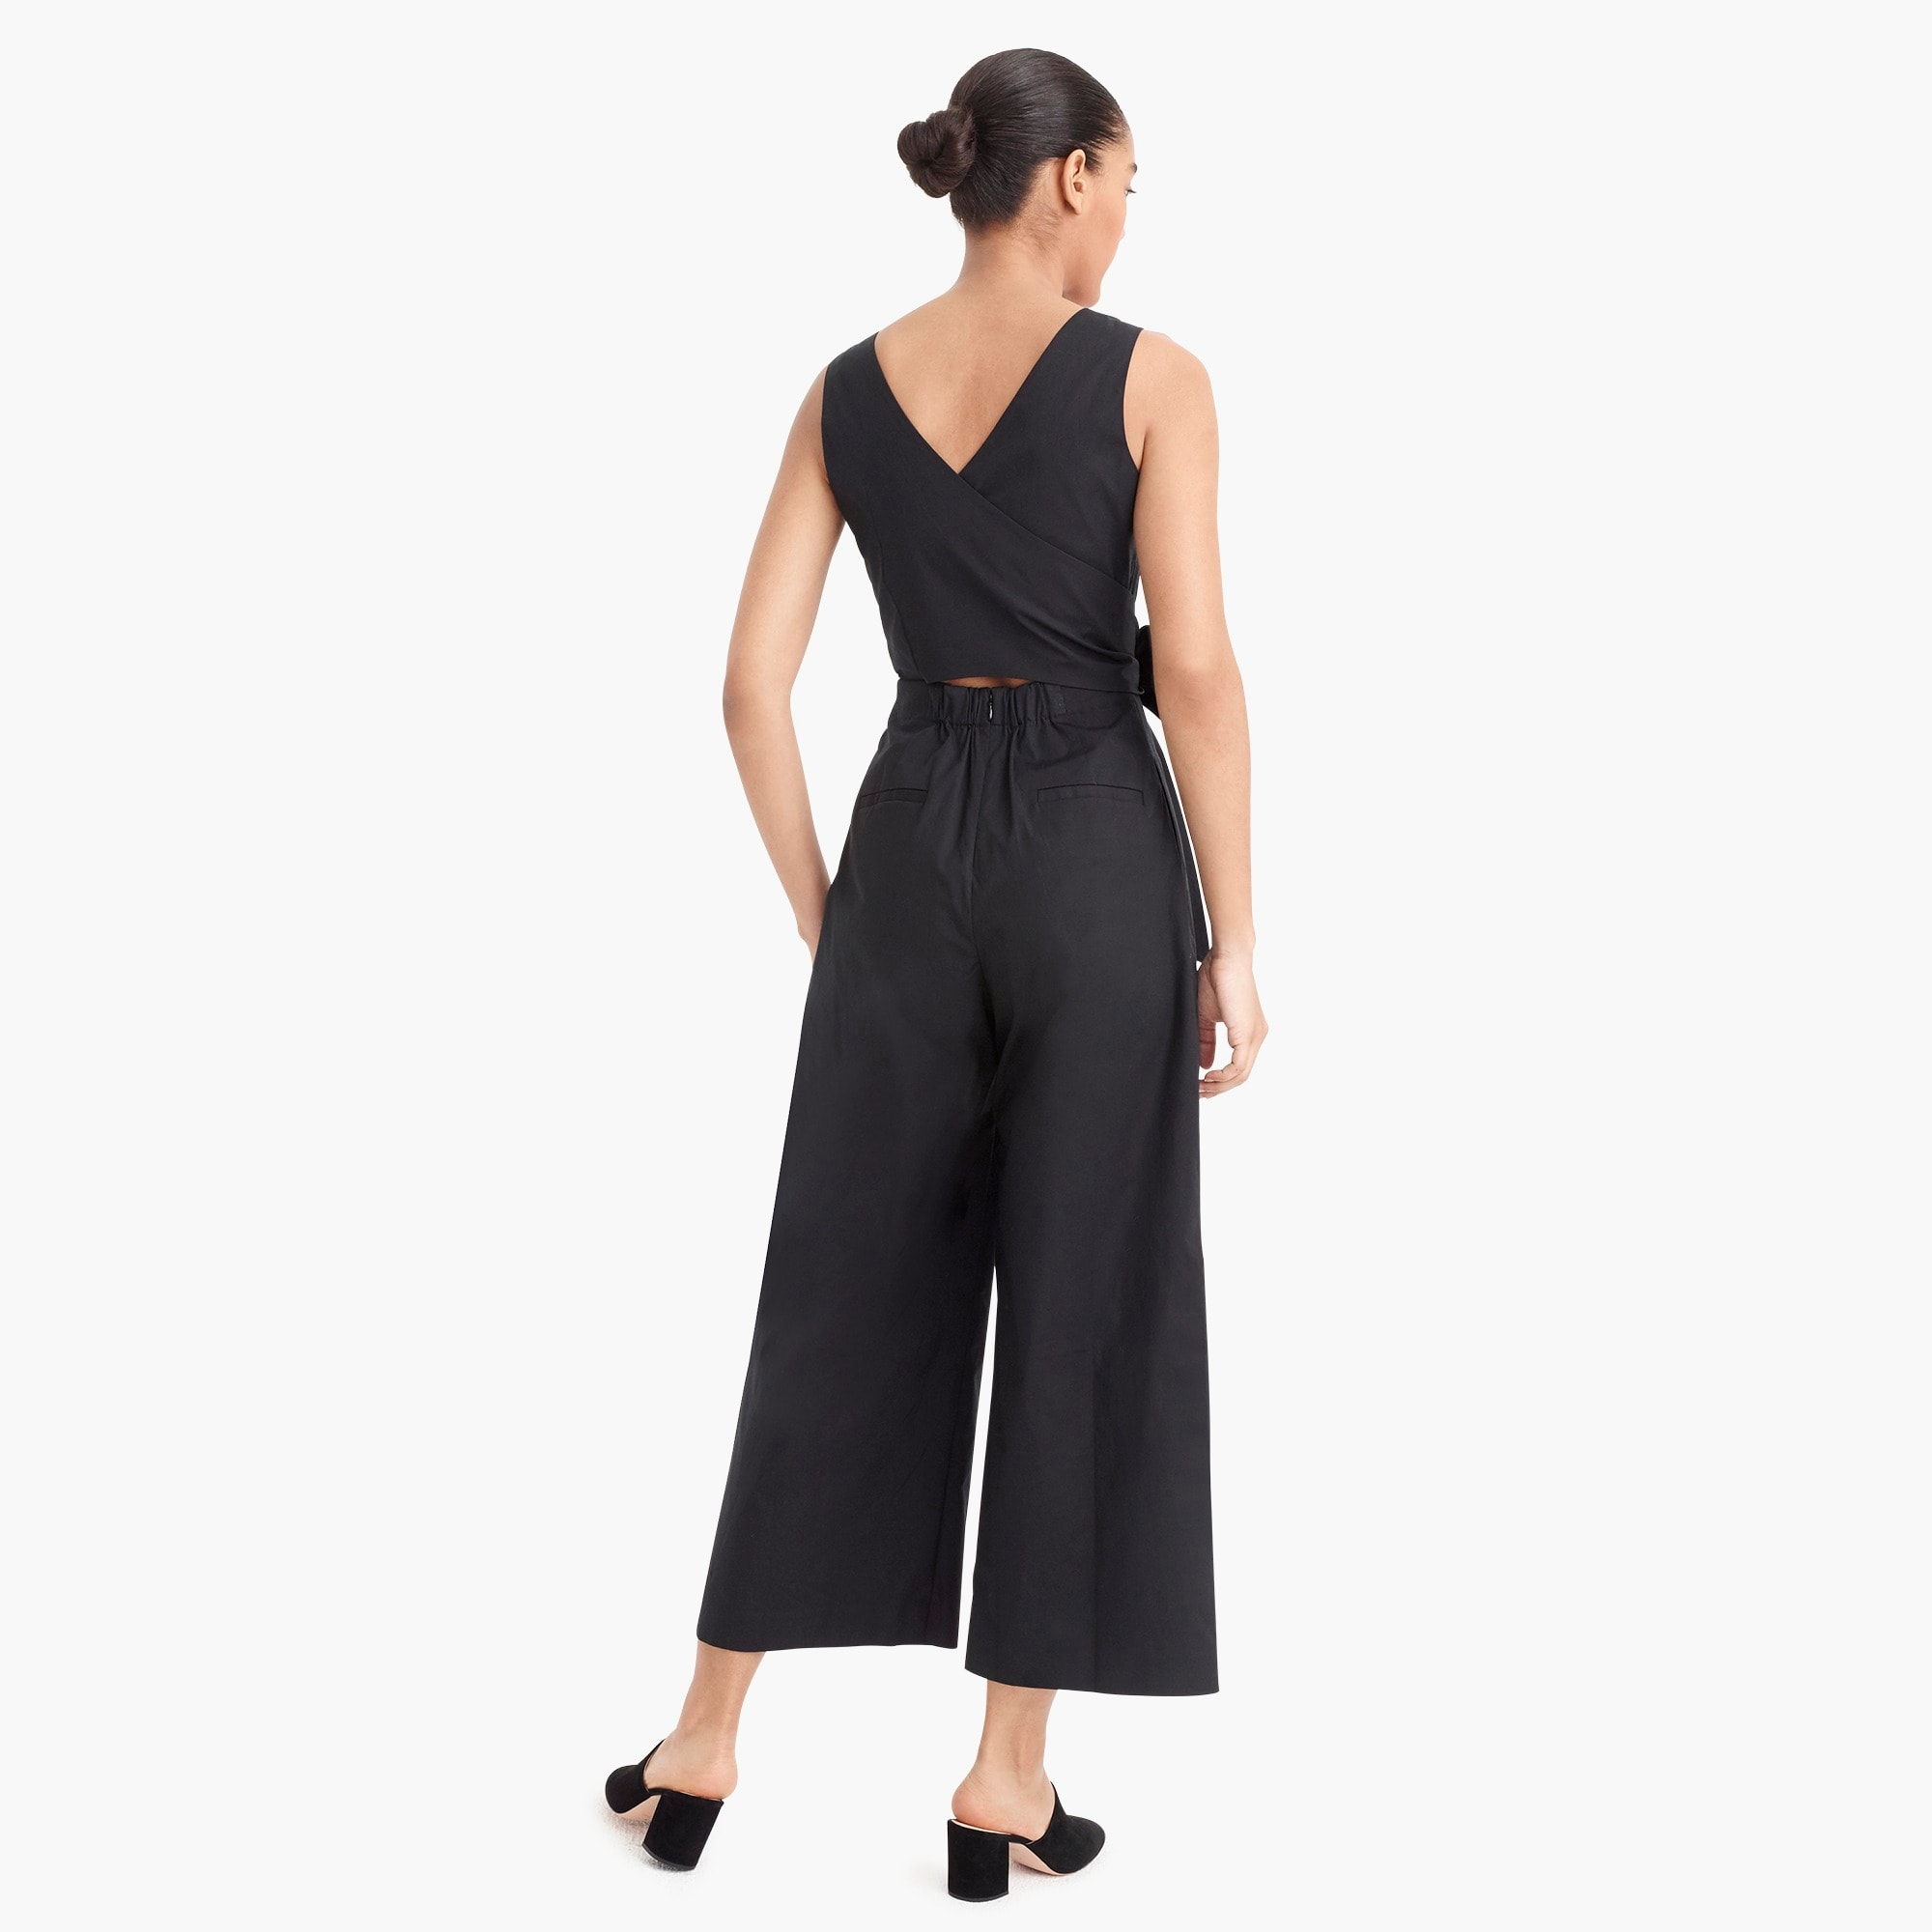 Image 6 for Wrap-tie jumpsuit in stretch poplin